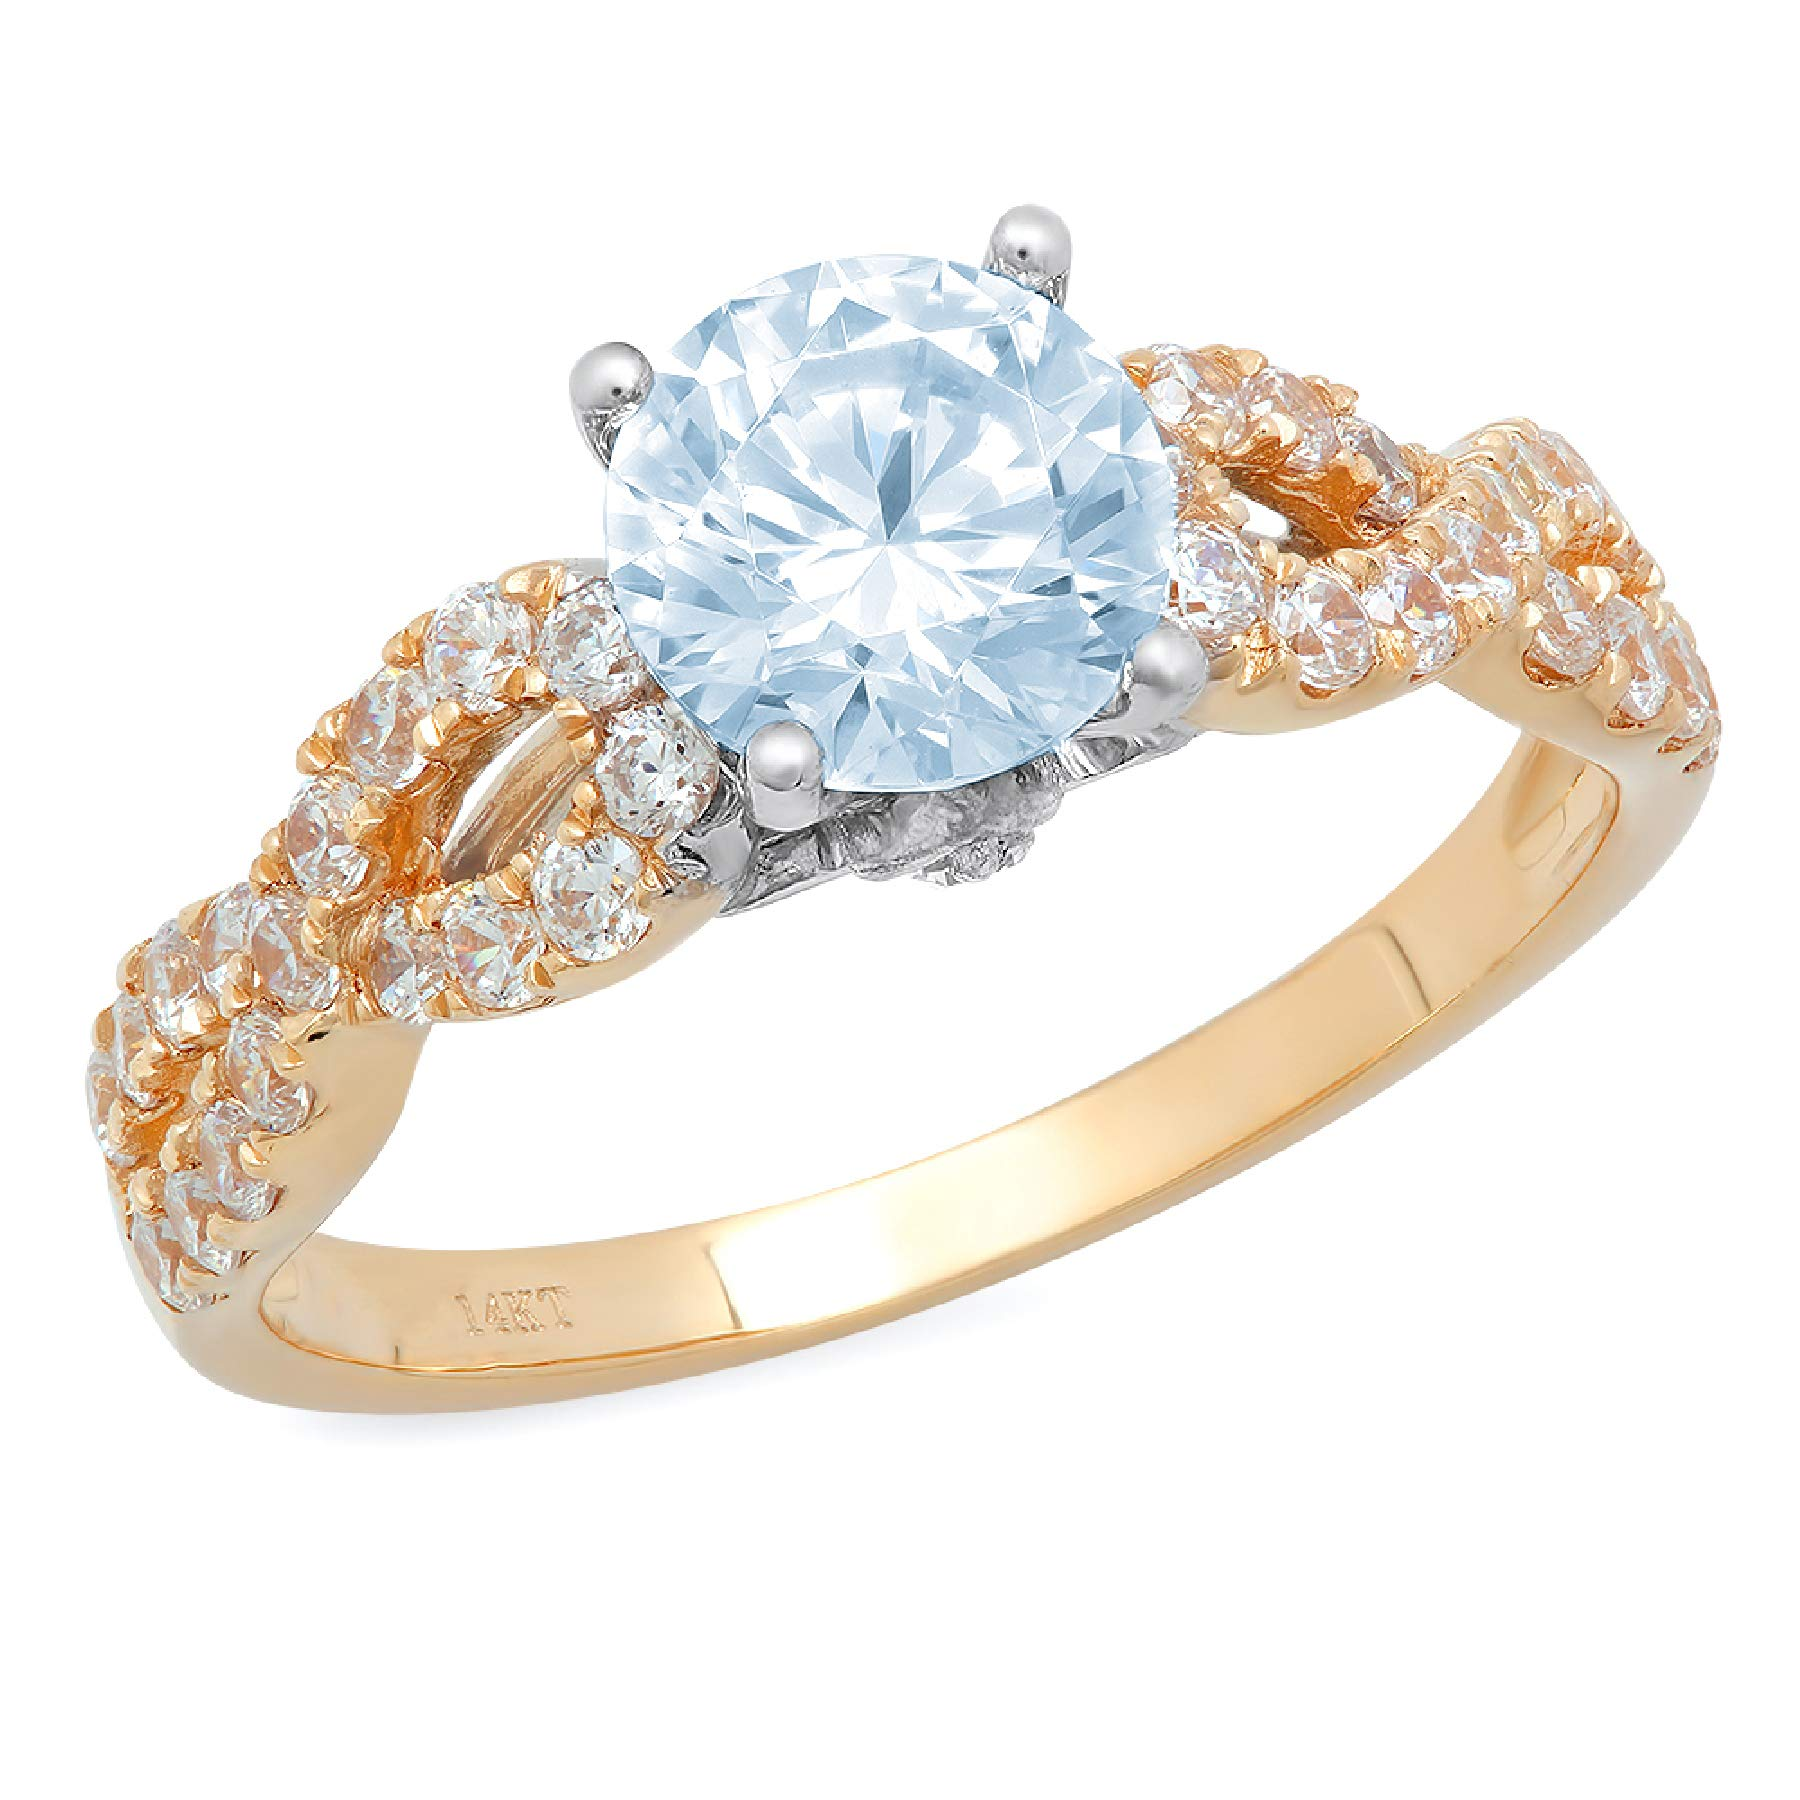 1.35 ct Brilliant Round Cut Solitaire Aquamarine Blue Simulated Diamond Ideal VVS1 Engagement Promise Statement Anniversary Bridal Wedding with accent Ring 14k 2 tone Gold Sz 11